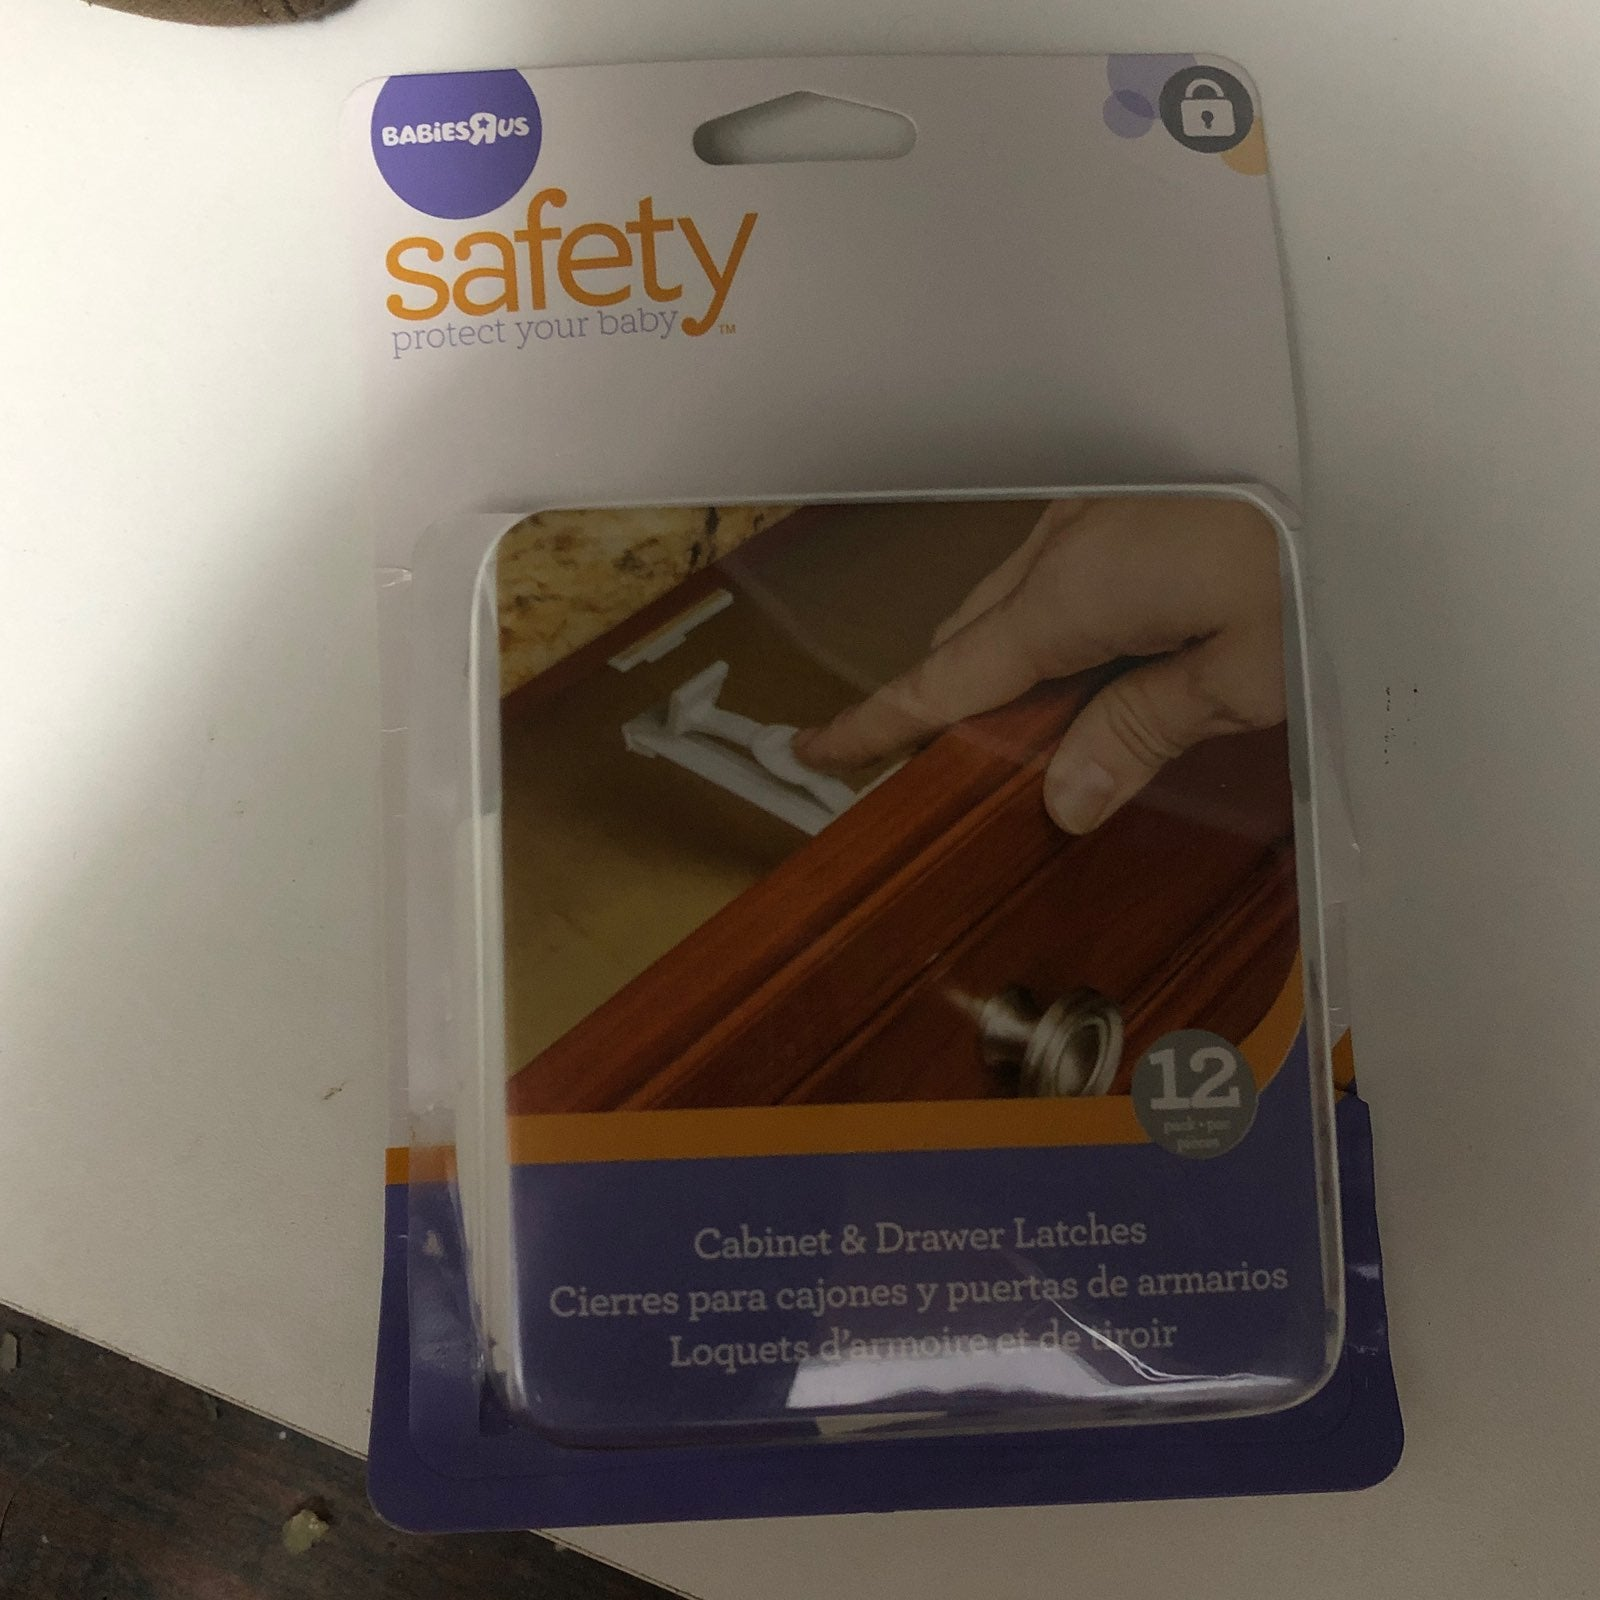 Cabinet & Drawer Latches